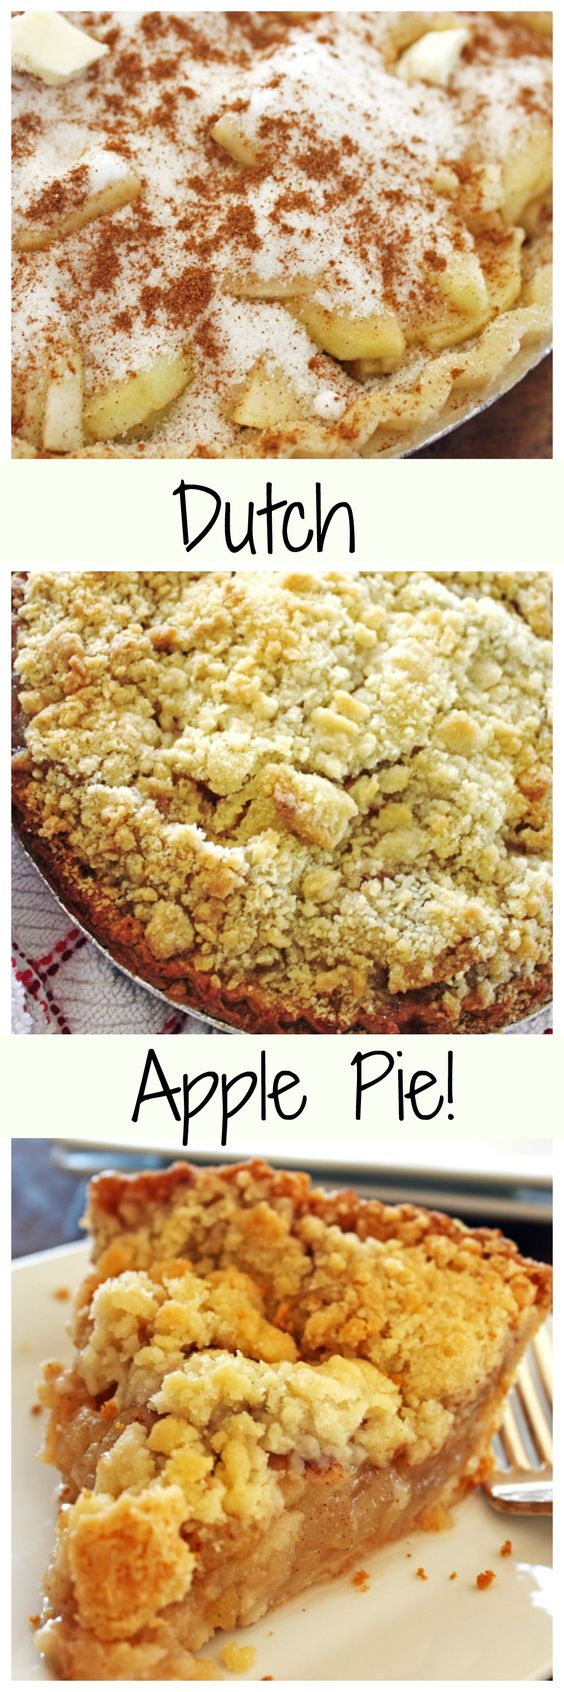 Apple Pie with a yummy crumb topping!  Perfect for the upcoming holidays!